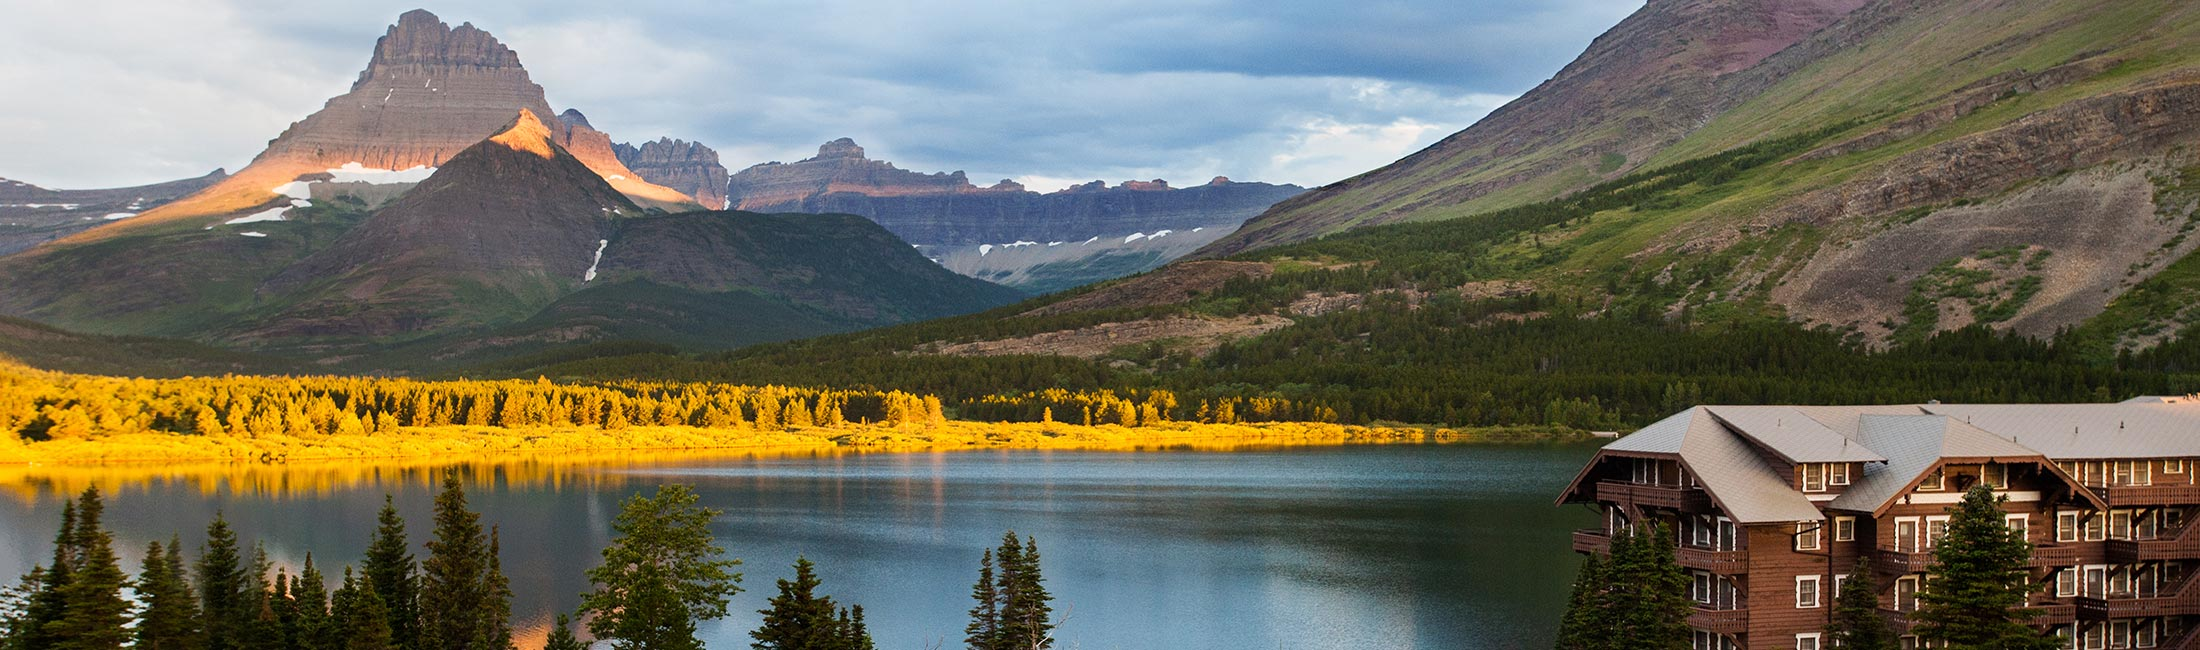 Many Glacier Hotel is surrounded by beautiful fall views in Glacier National Park, Montana.